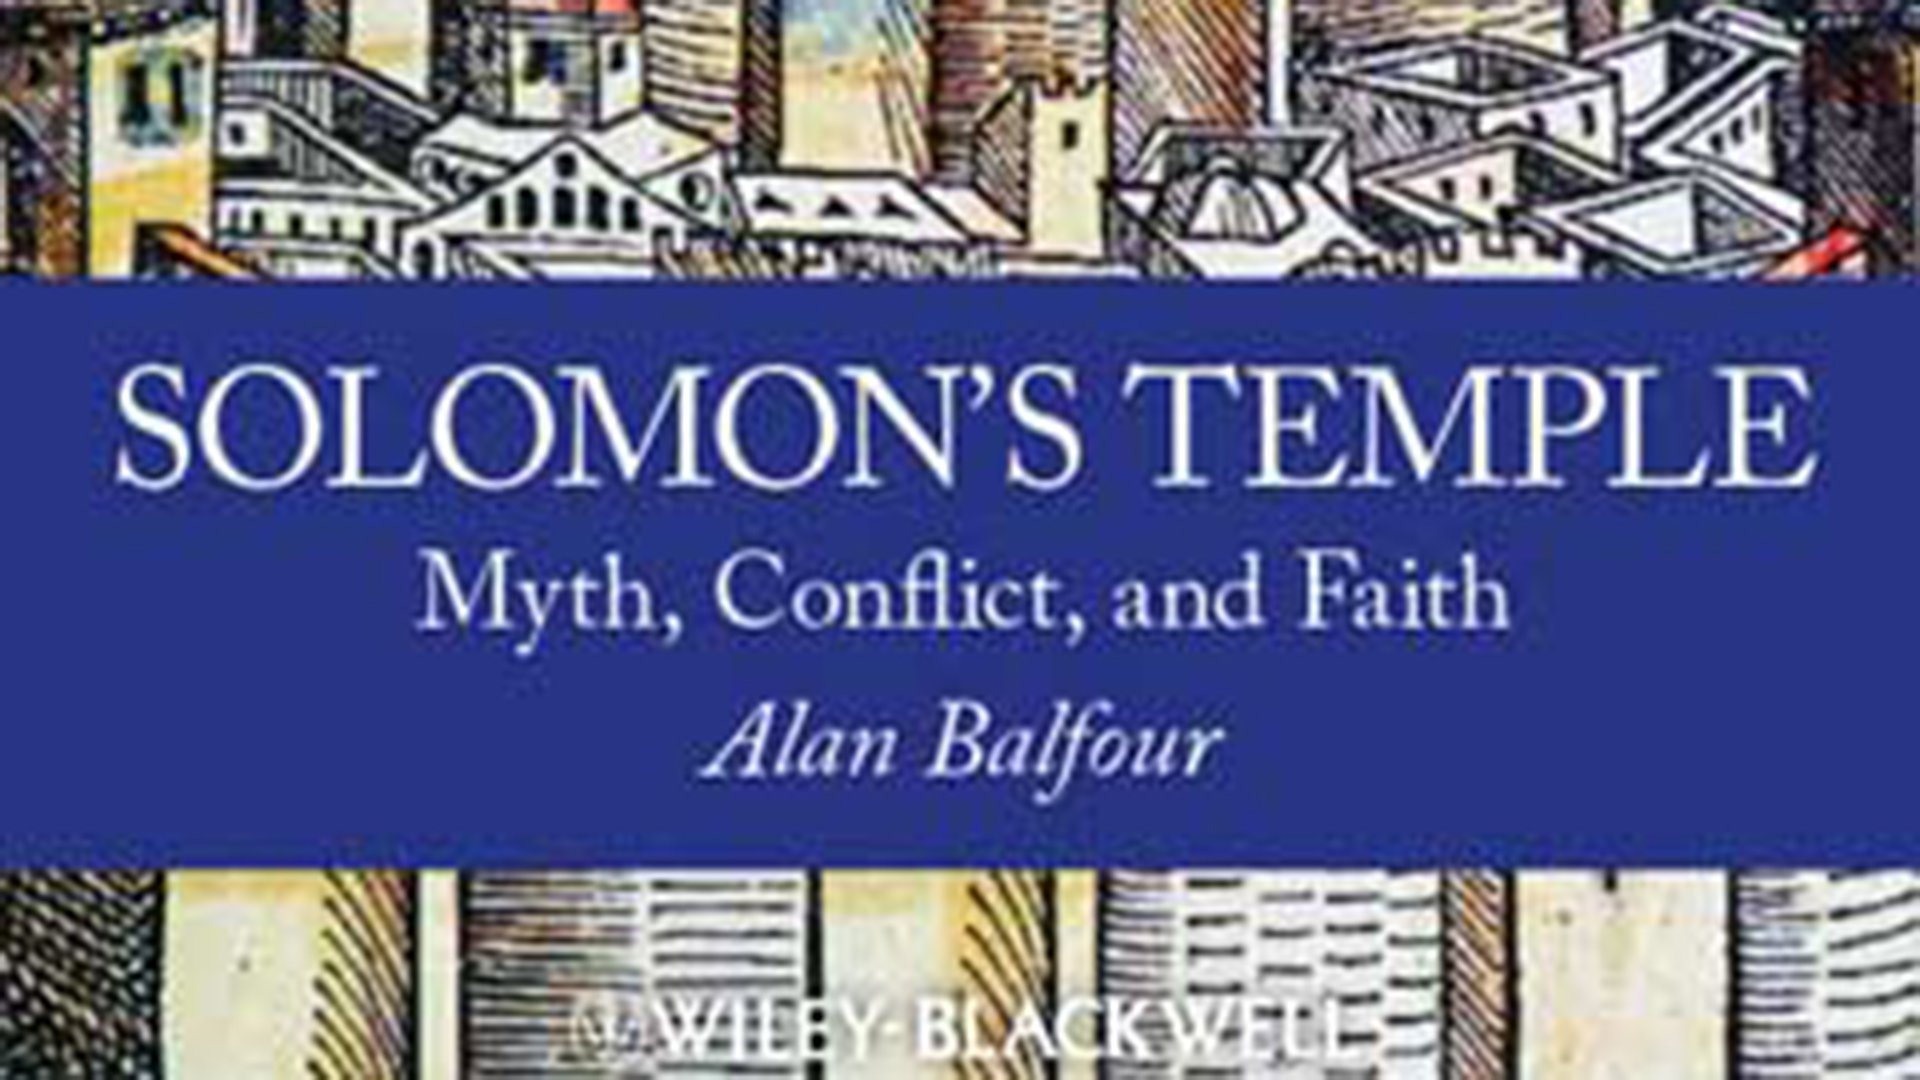 Solomon's Temple Book Cover